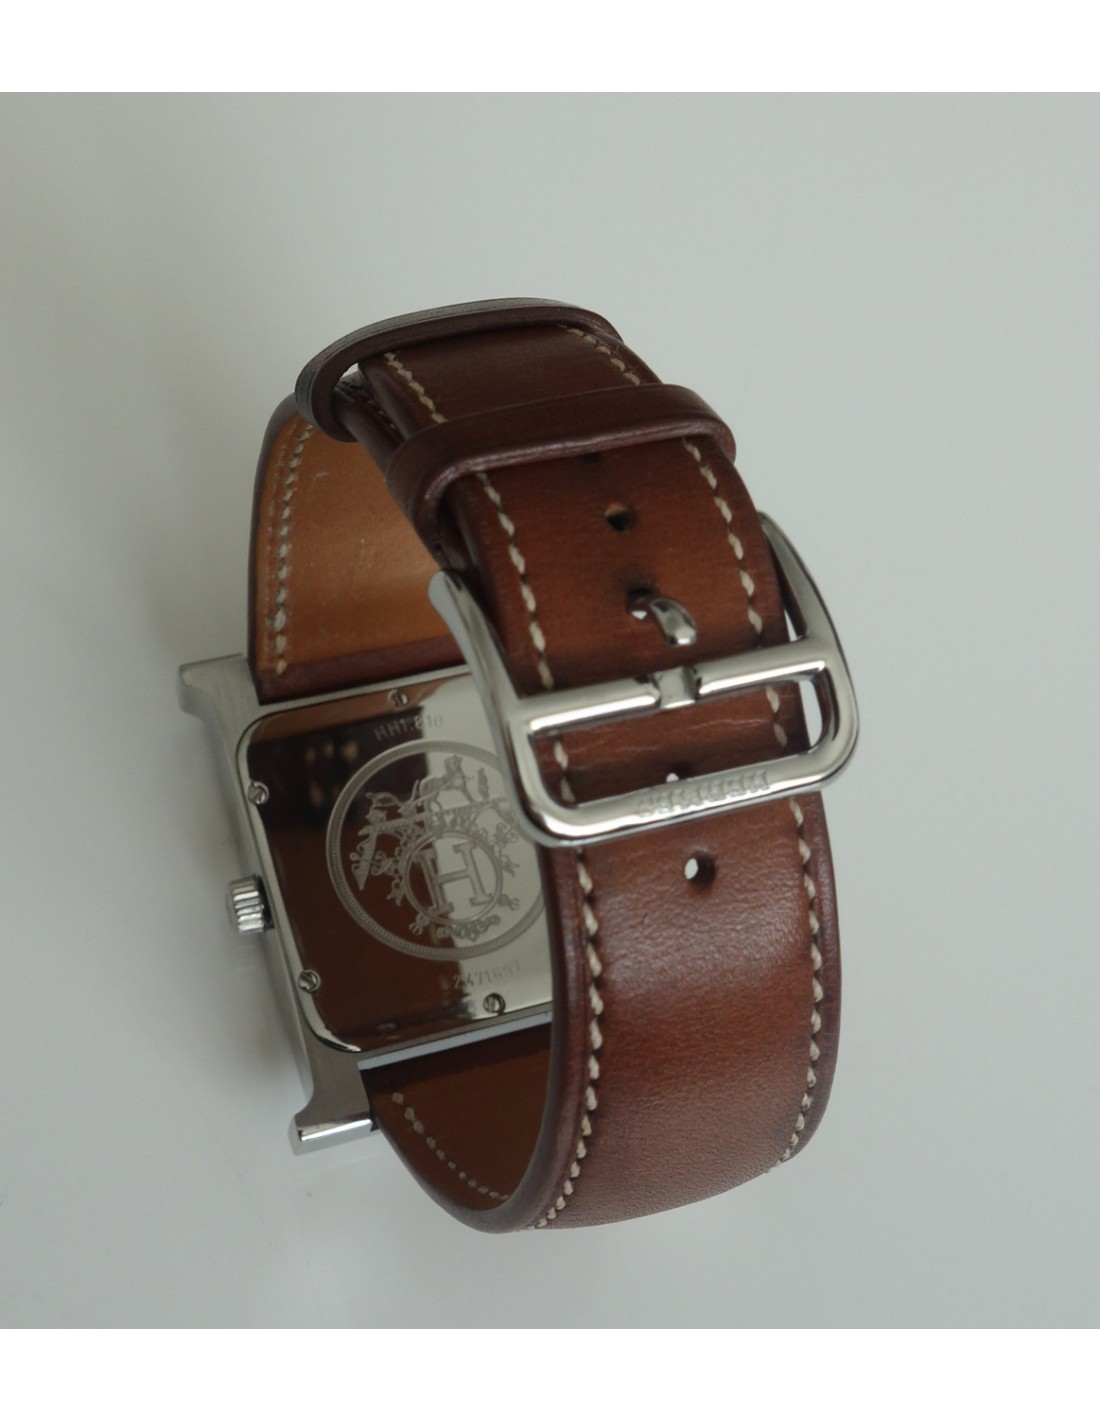 a343851123 Replique Montre Kelly Hermes - cheap watches mgc-gas.com